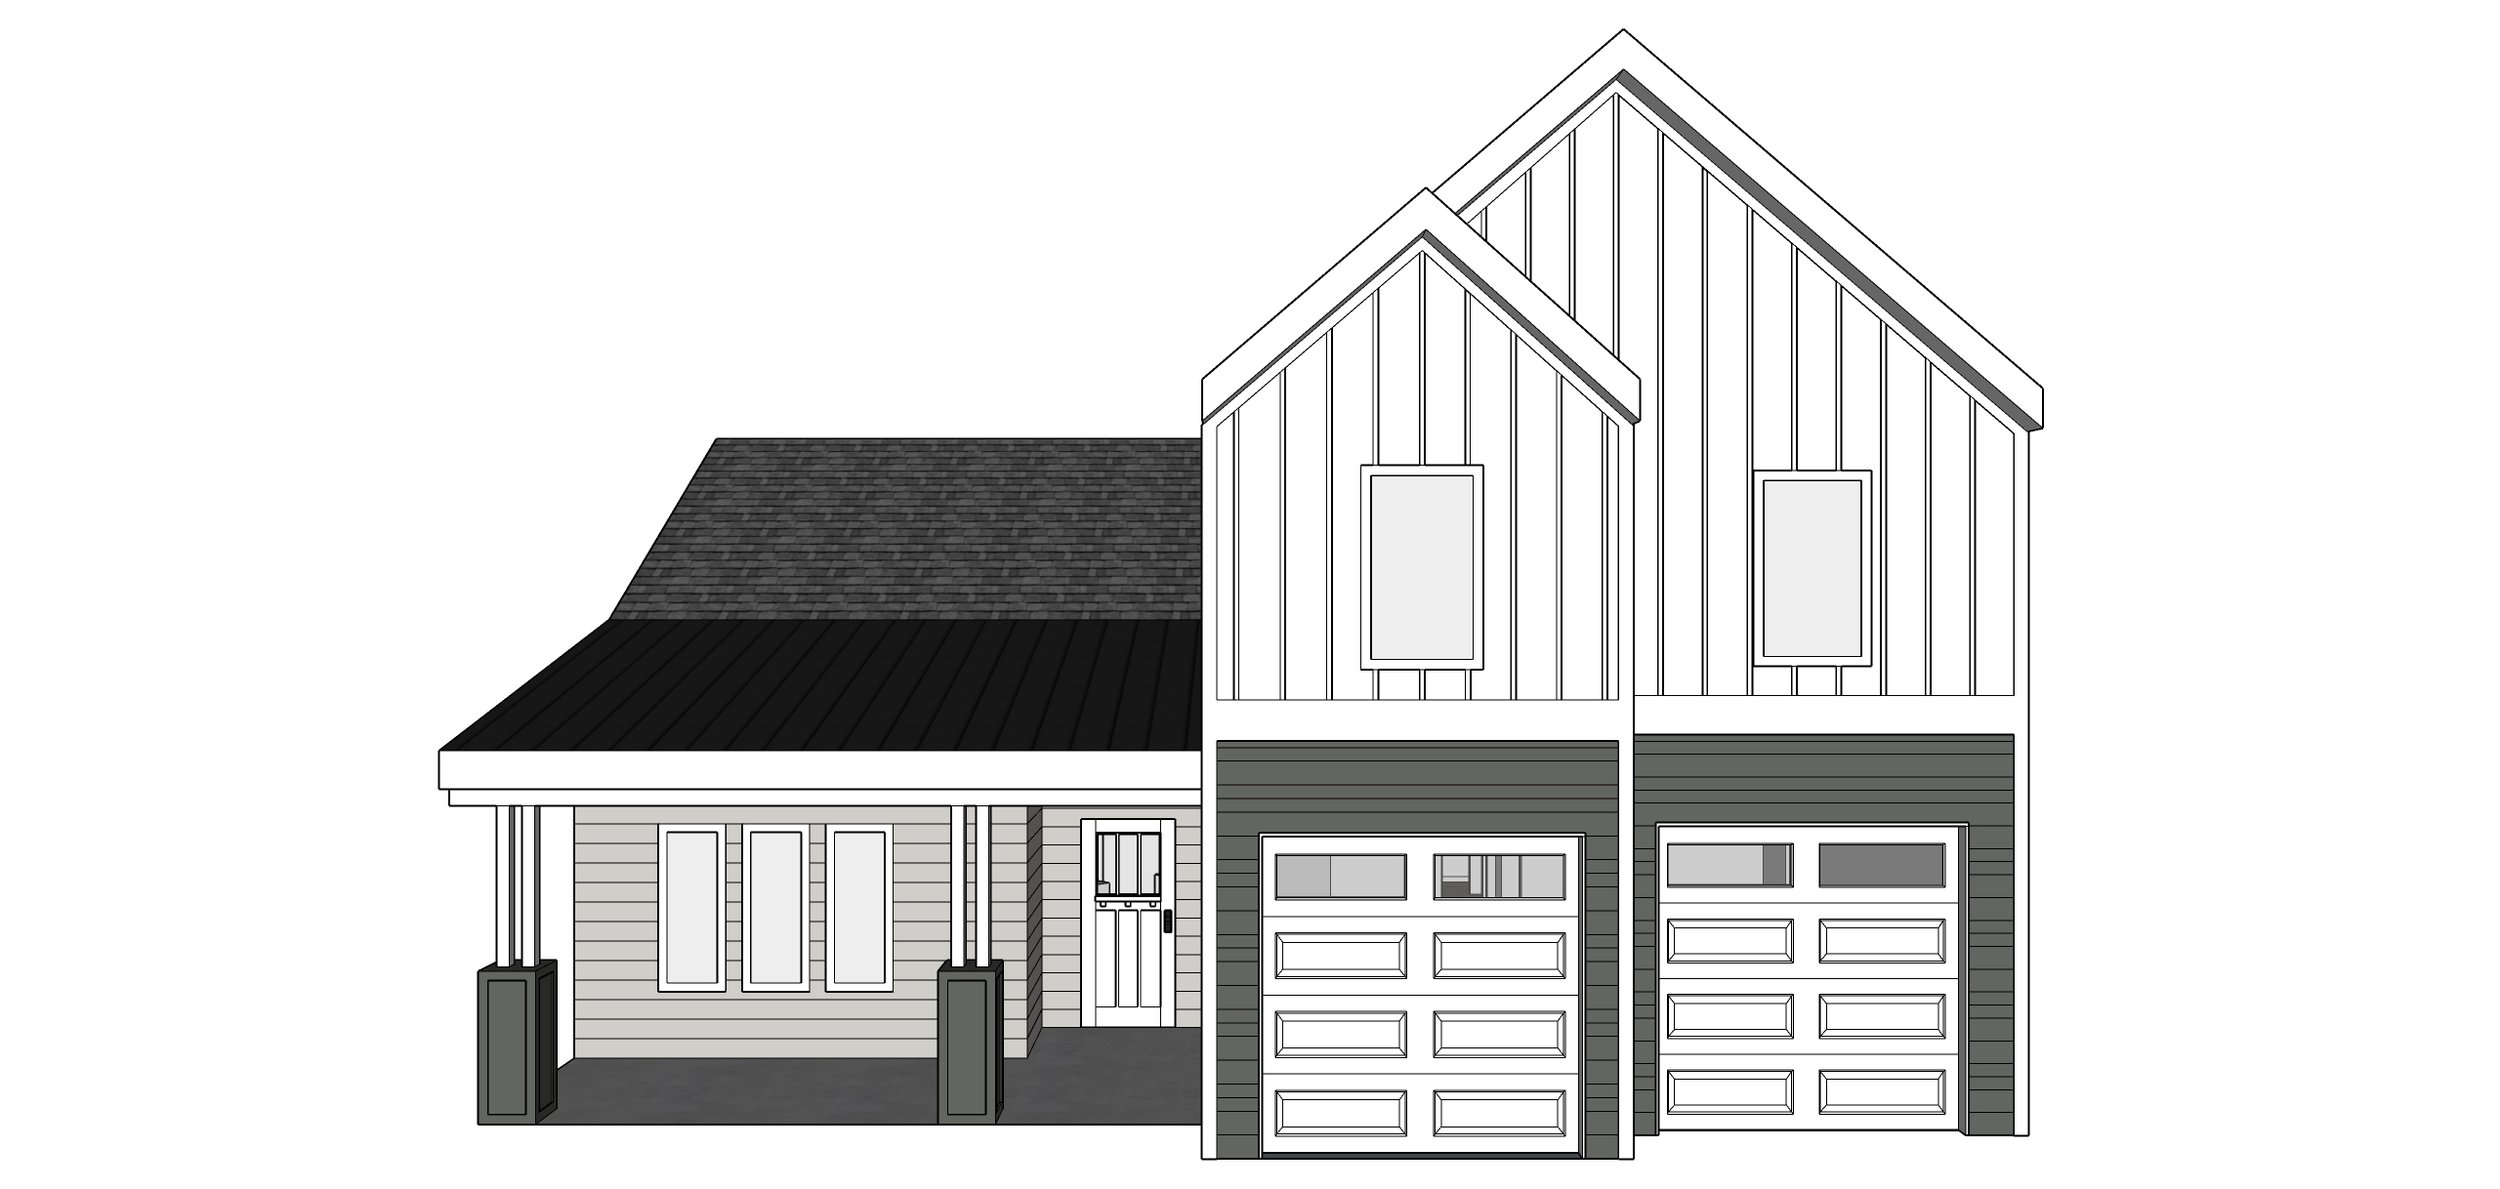 RIVENDELL 6.0 cropped EXTERIOR - FRONT ELEVATION.jpg